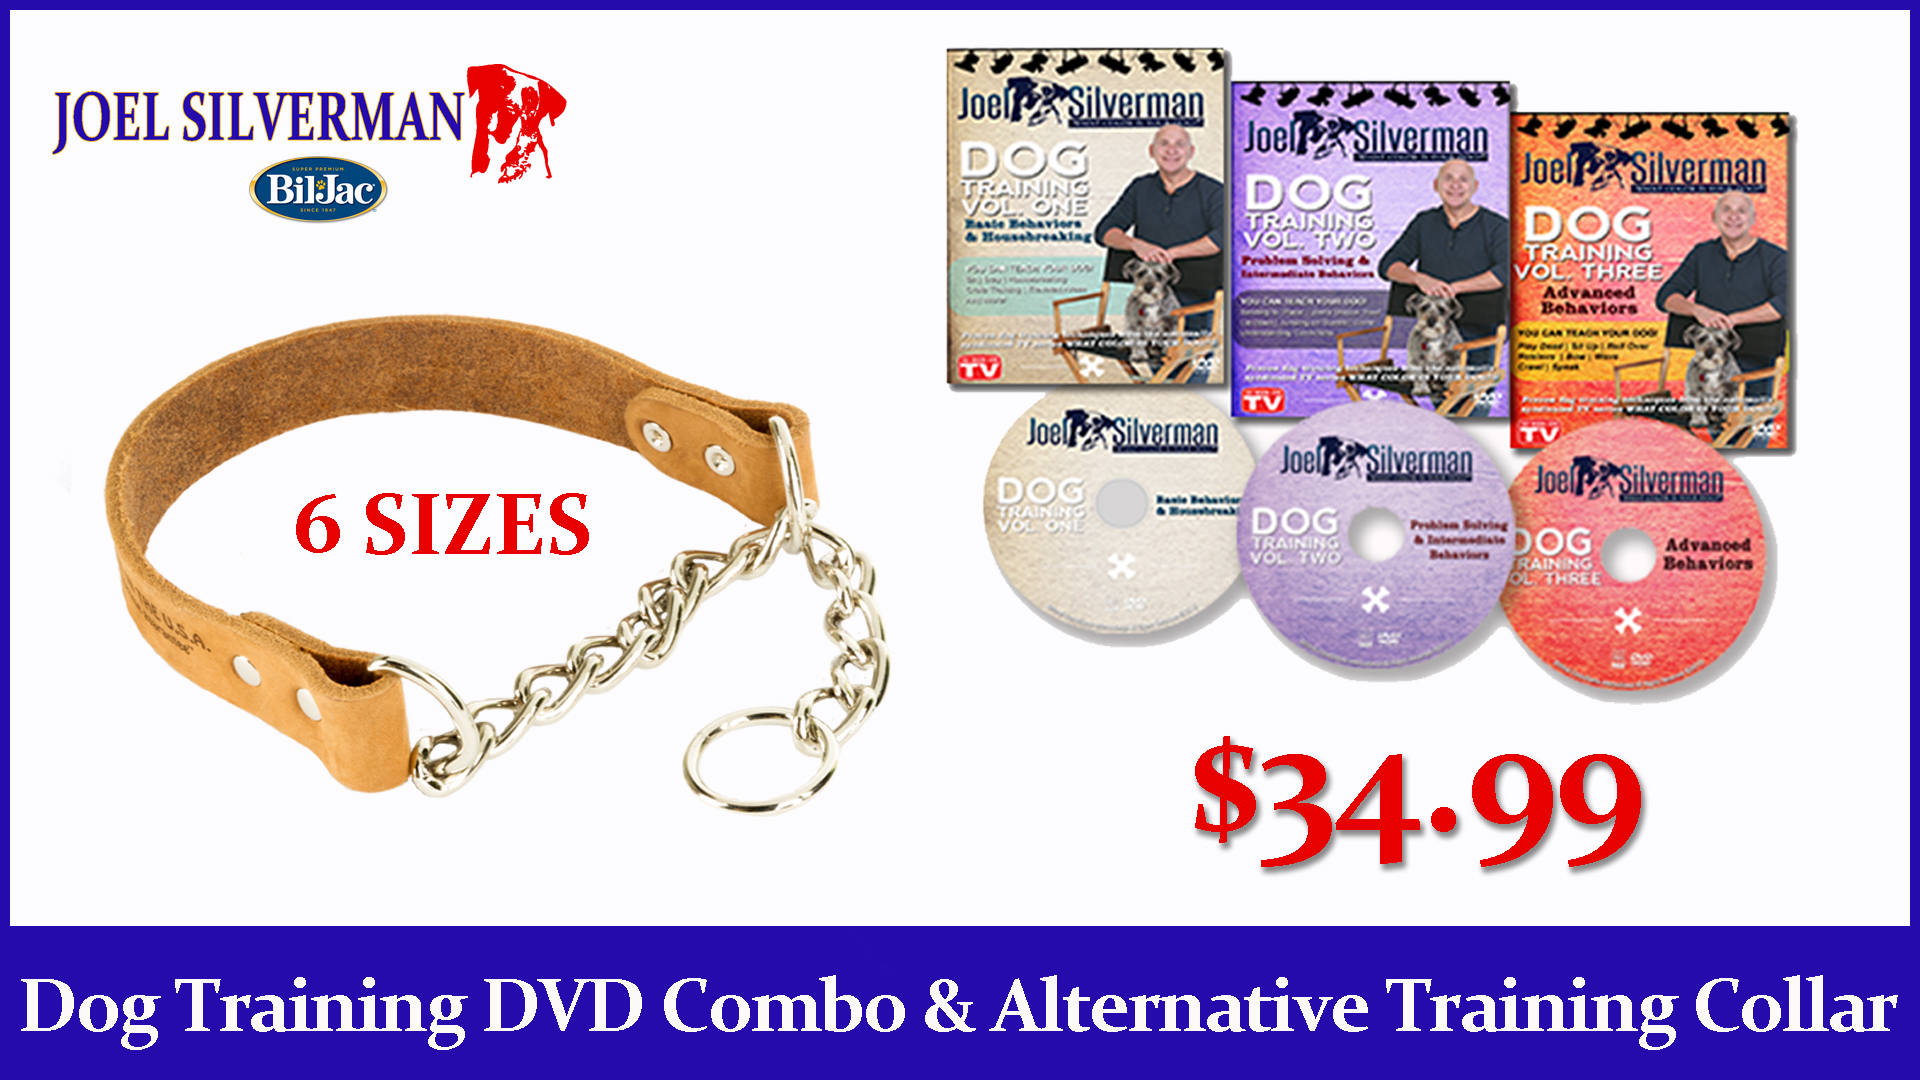 Joel Silverman's 3 DVD Set – Alternative Training Collar  Combo